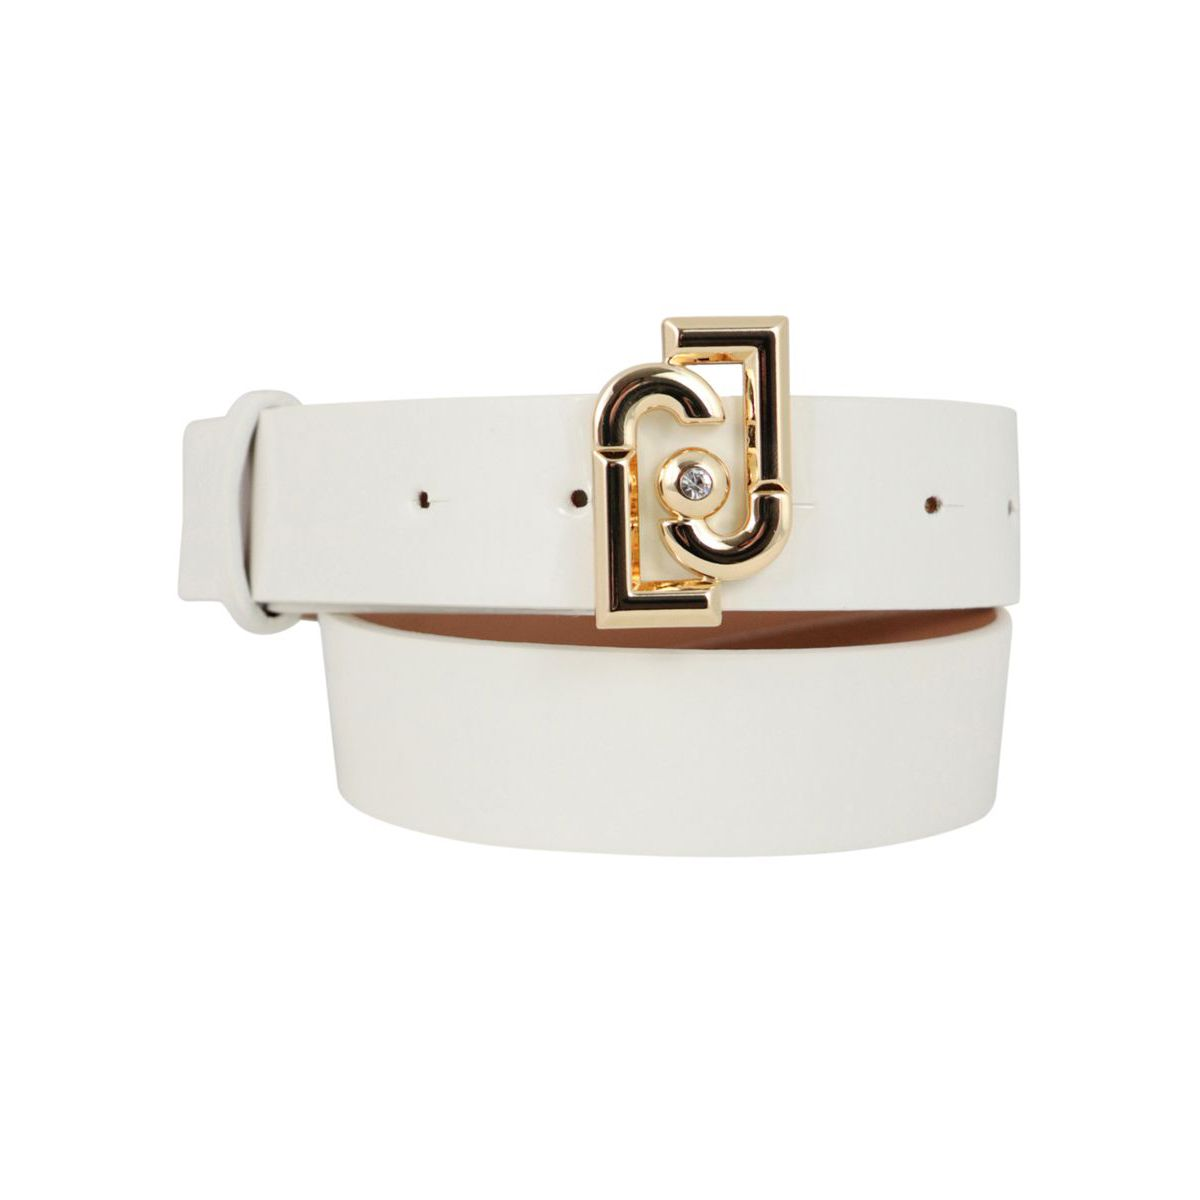 Faux leather belt with logo buckle White Liu Jo